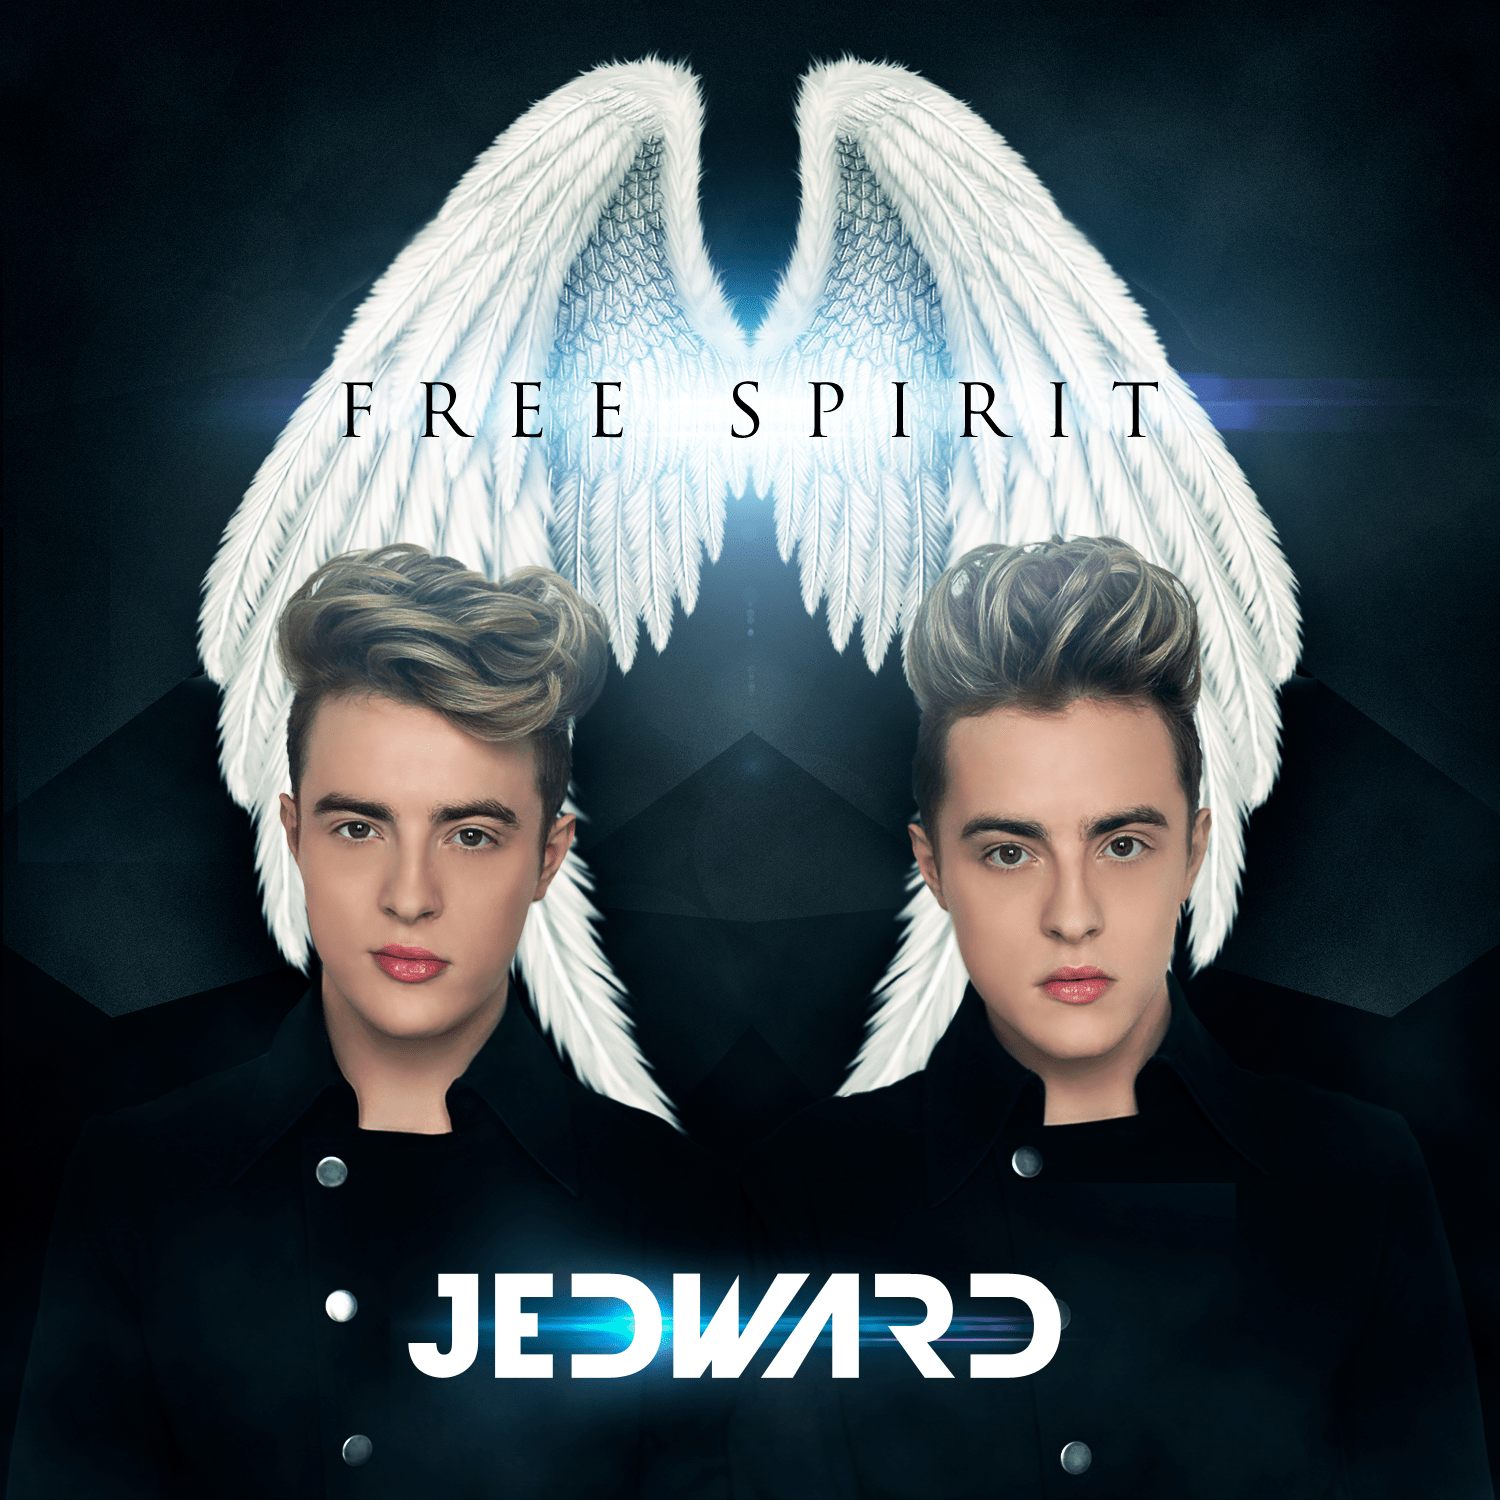 Jedward are back with fourth album Free Spirit (Picture: Official album cover art)